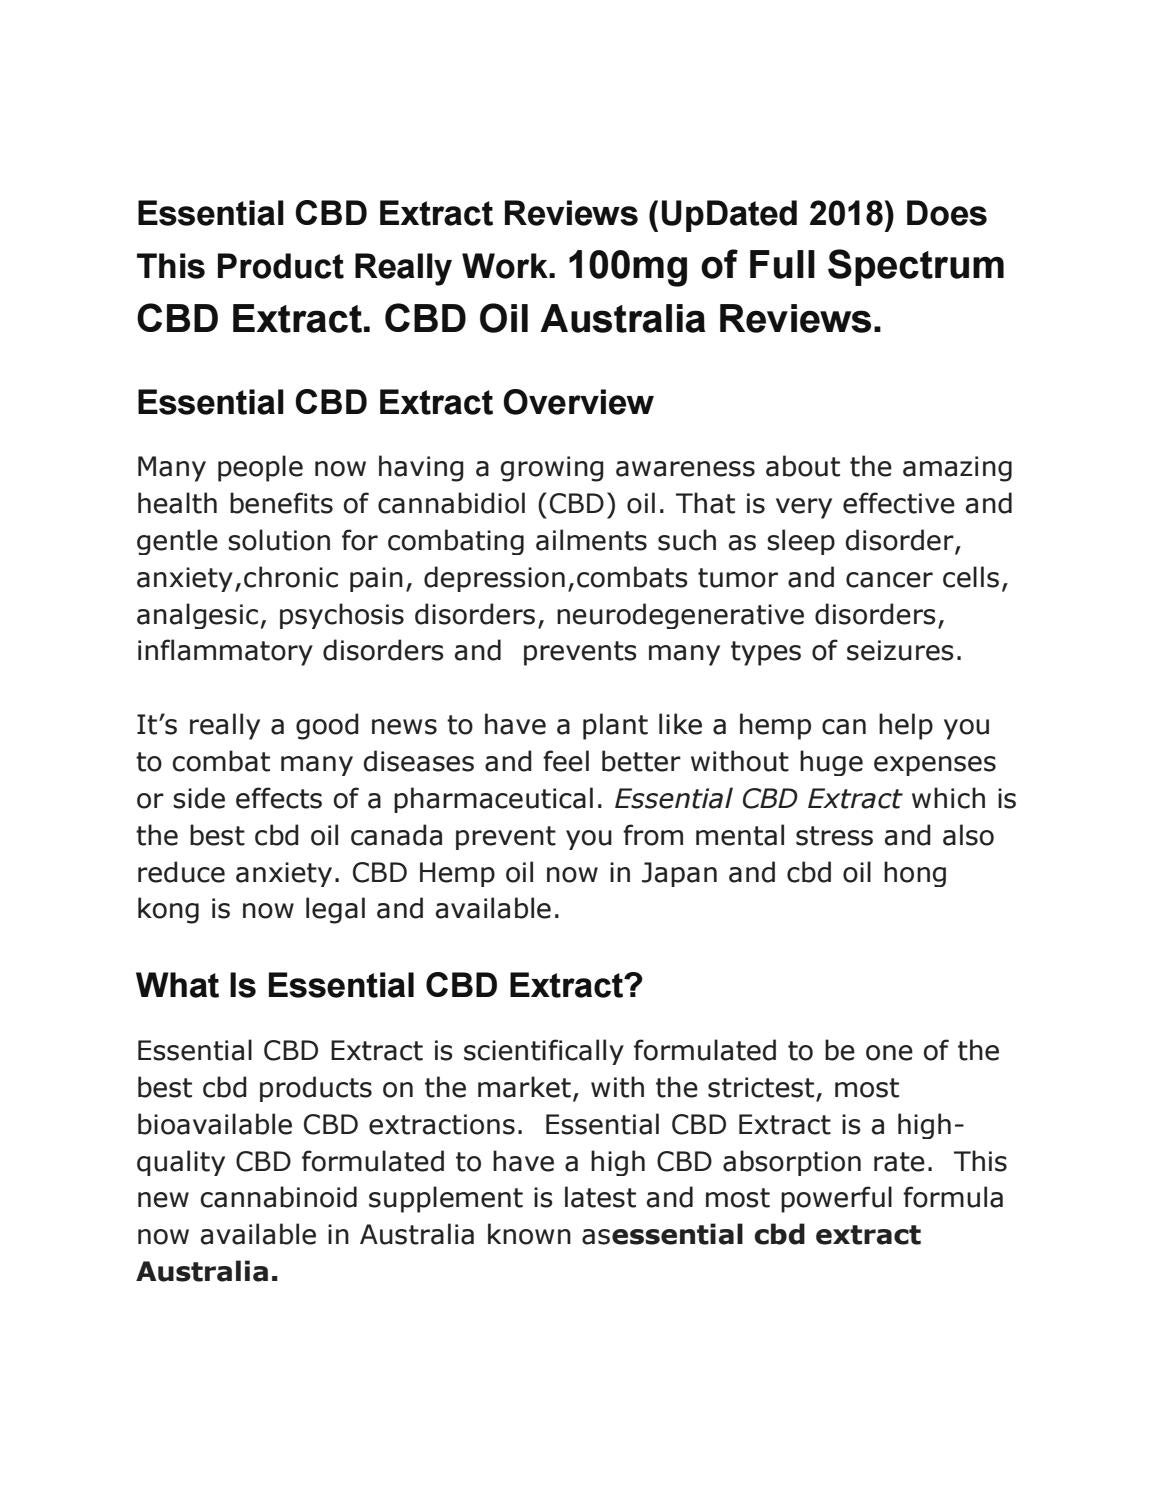 Essential CBD Extract Reviews (UpDated 2018) Does This